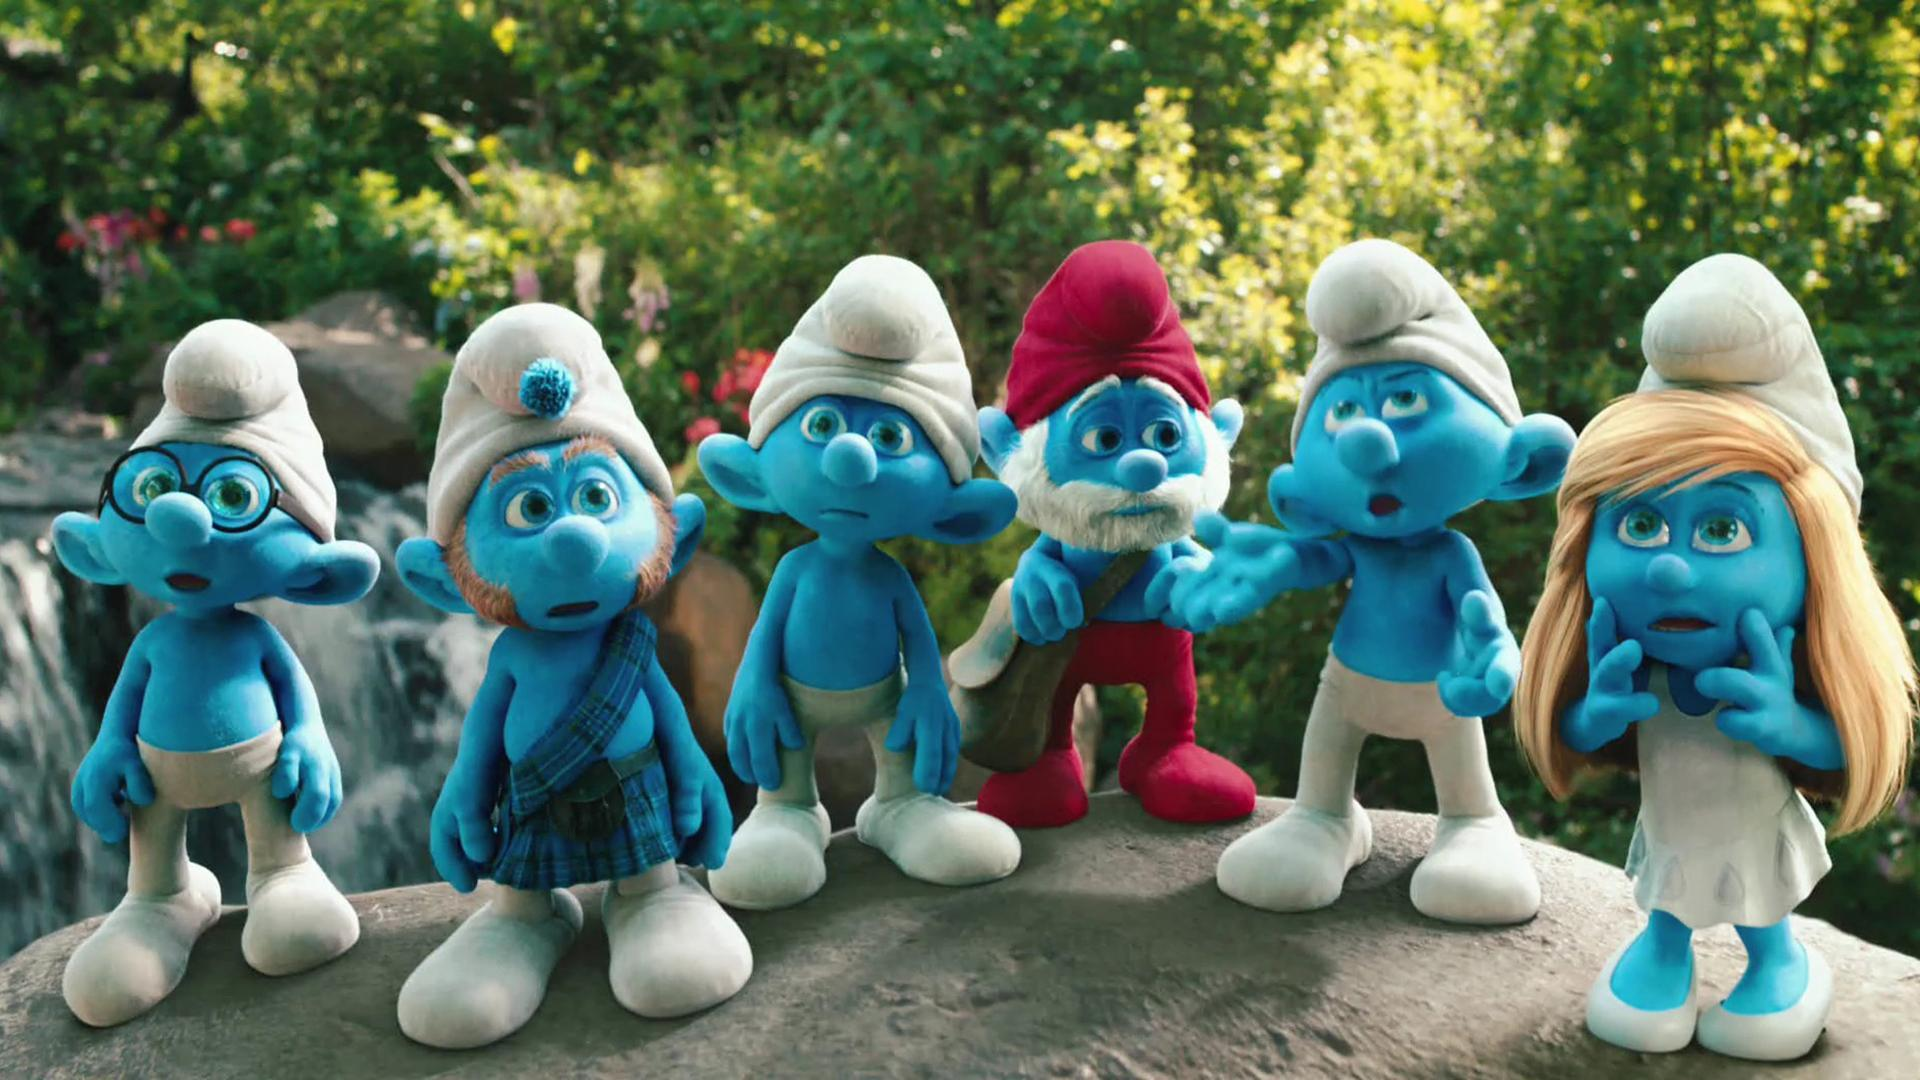 How well do you know the smurfs?